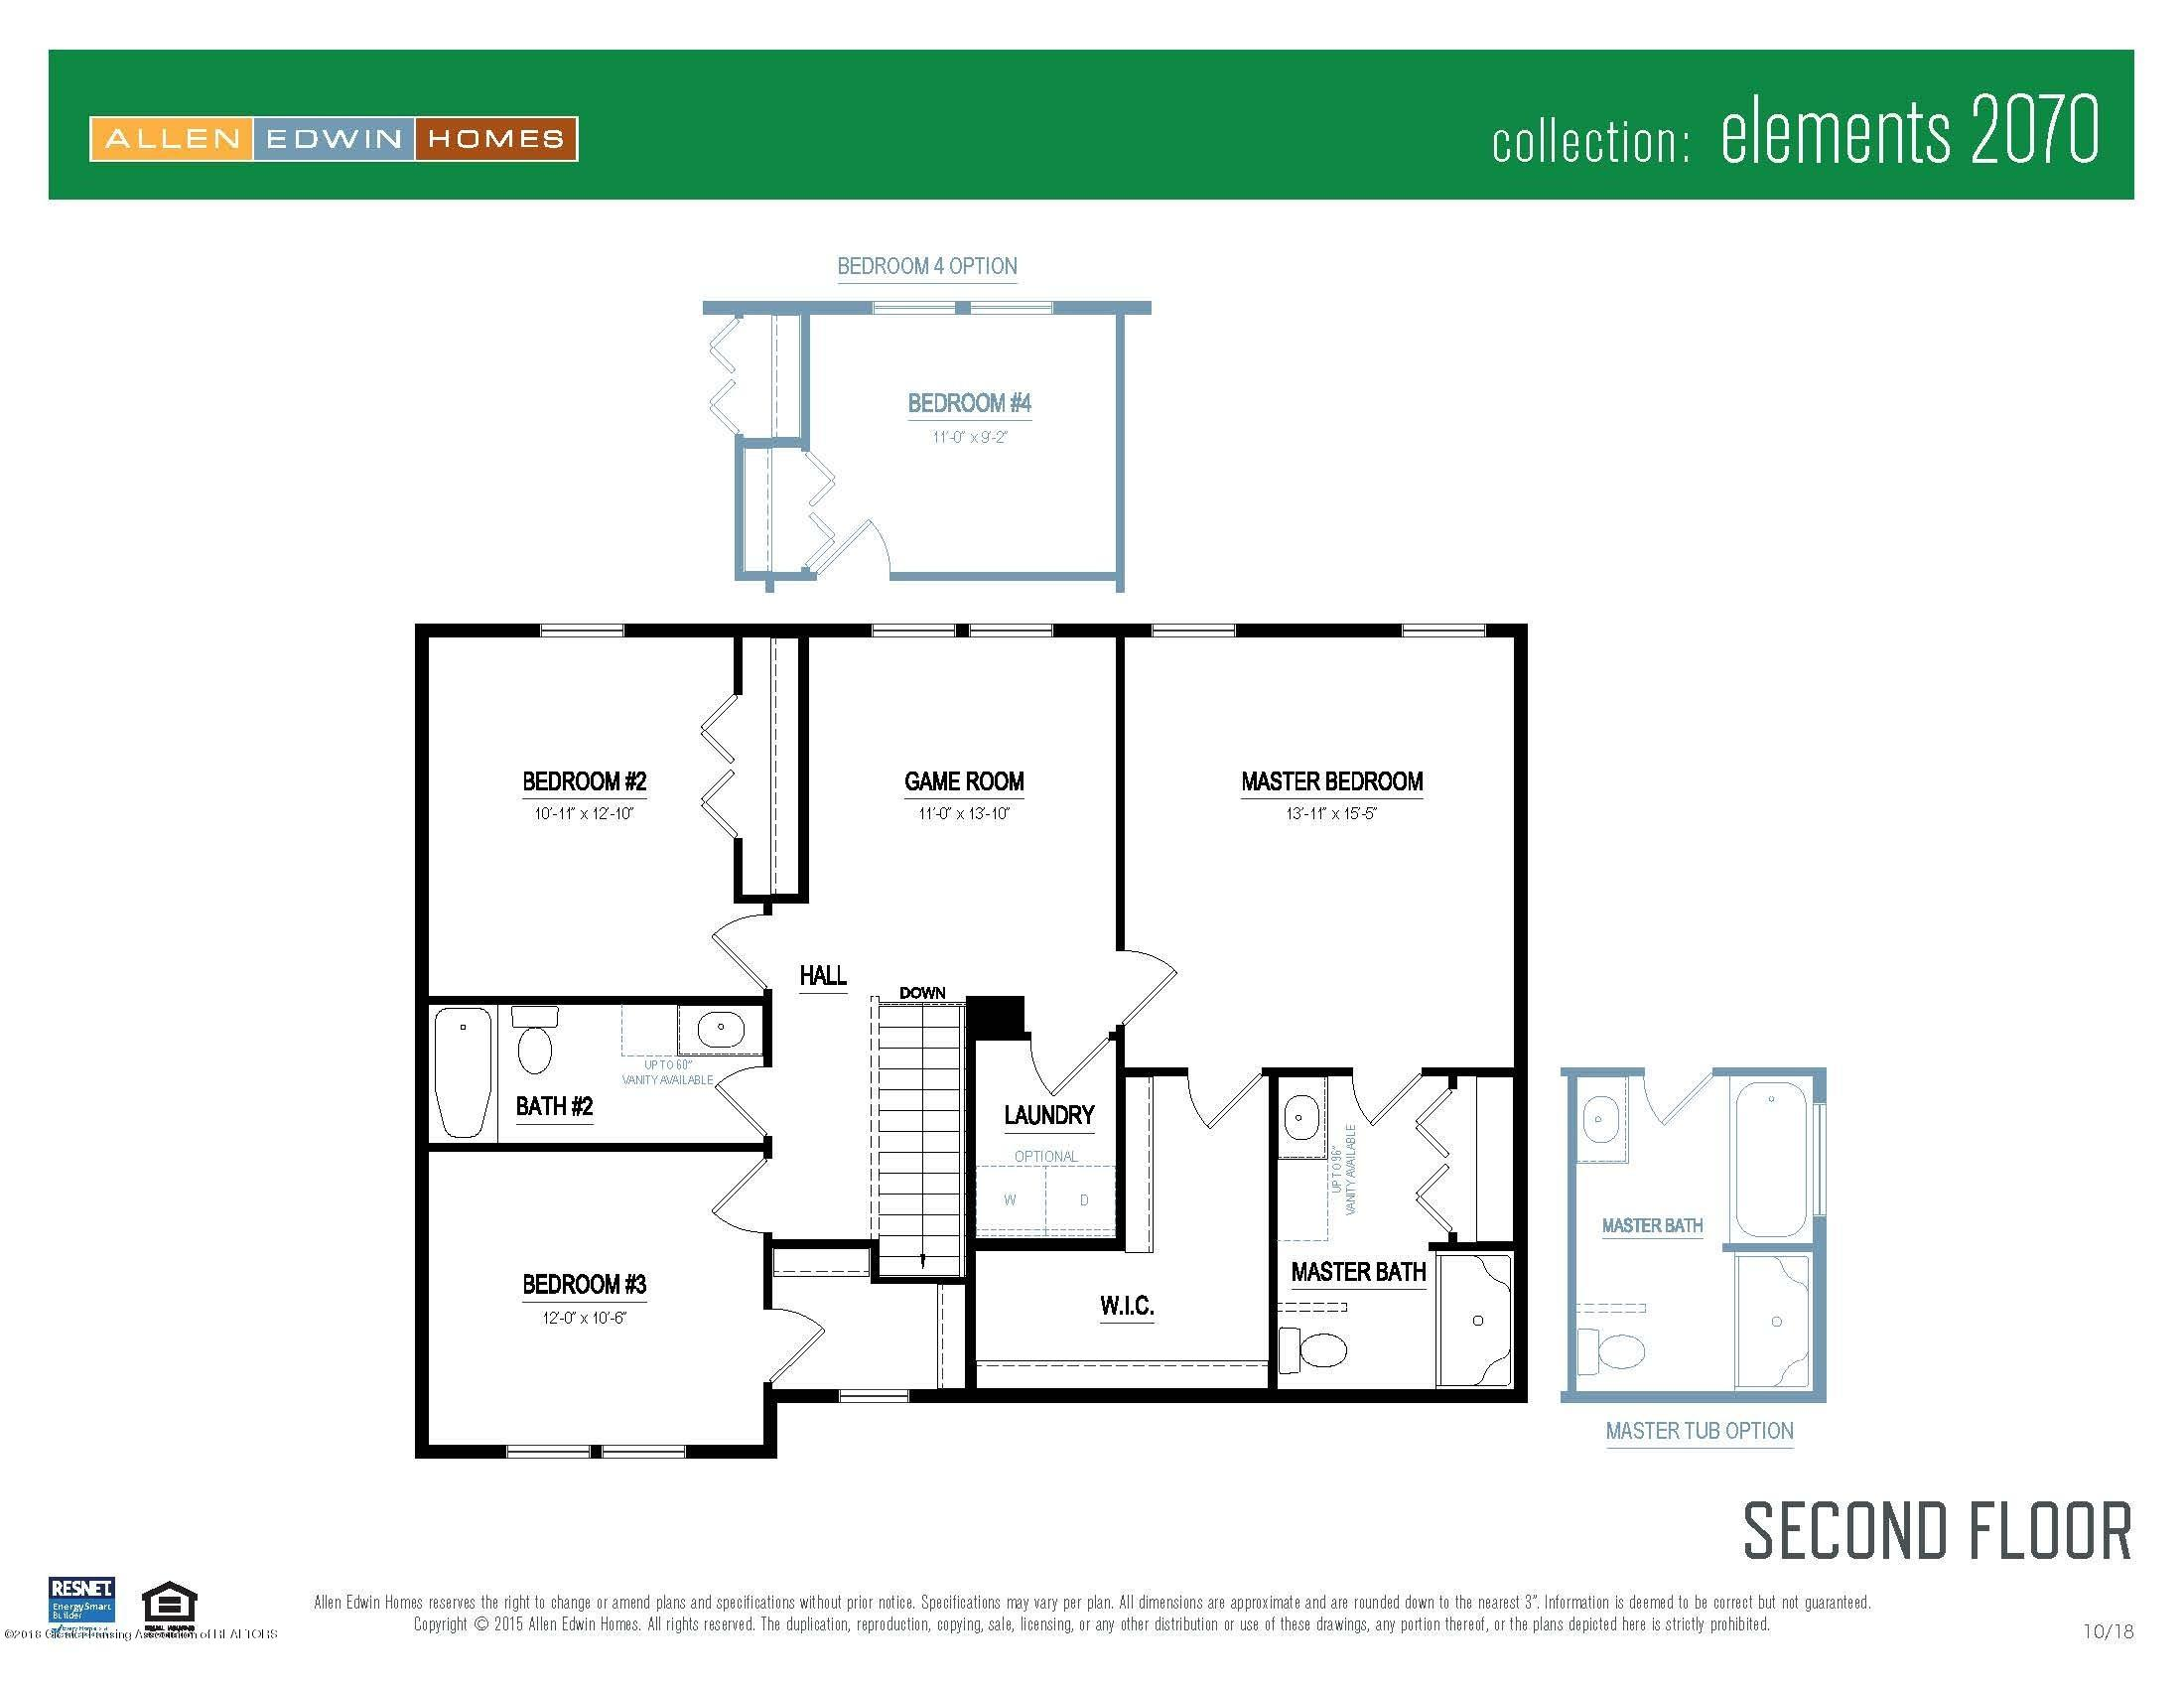 1780 Merganser Dr - Elements 2070 V8.0a Second Floor - 21